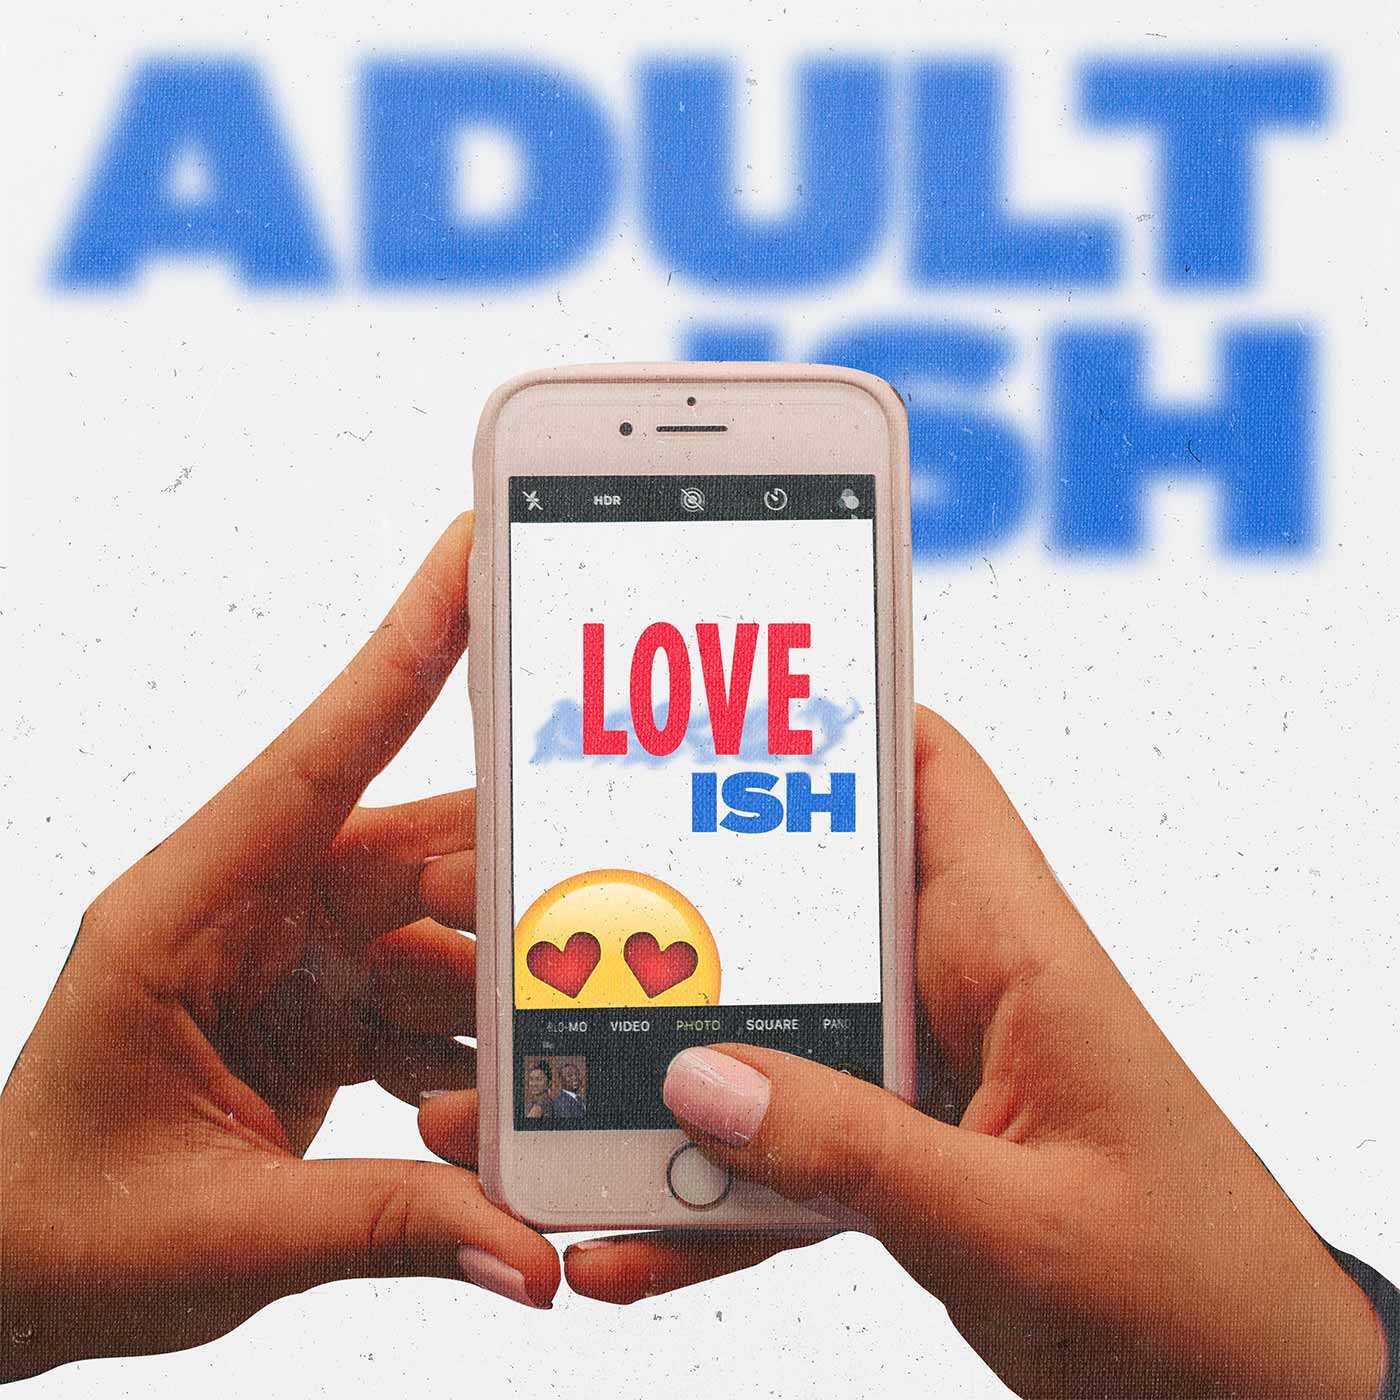 Adult ISH: Love ISH